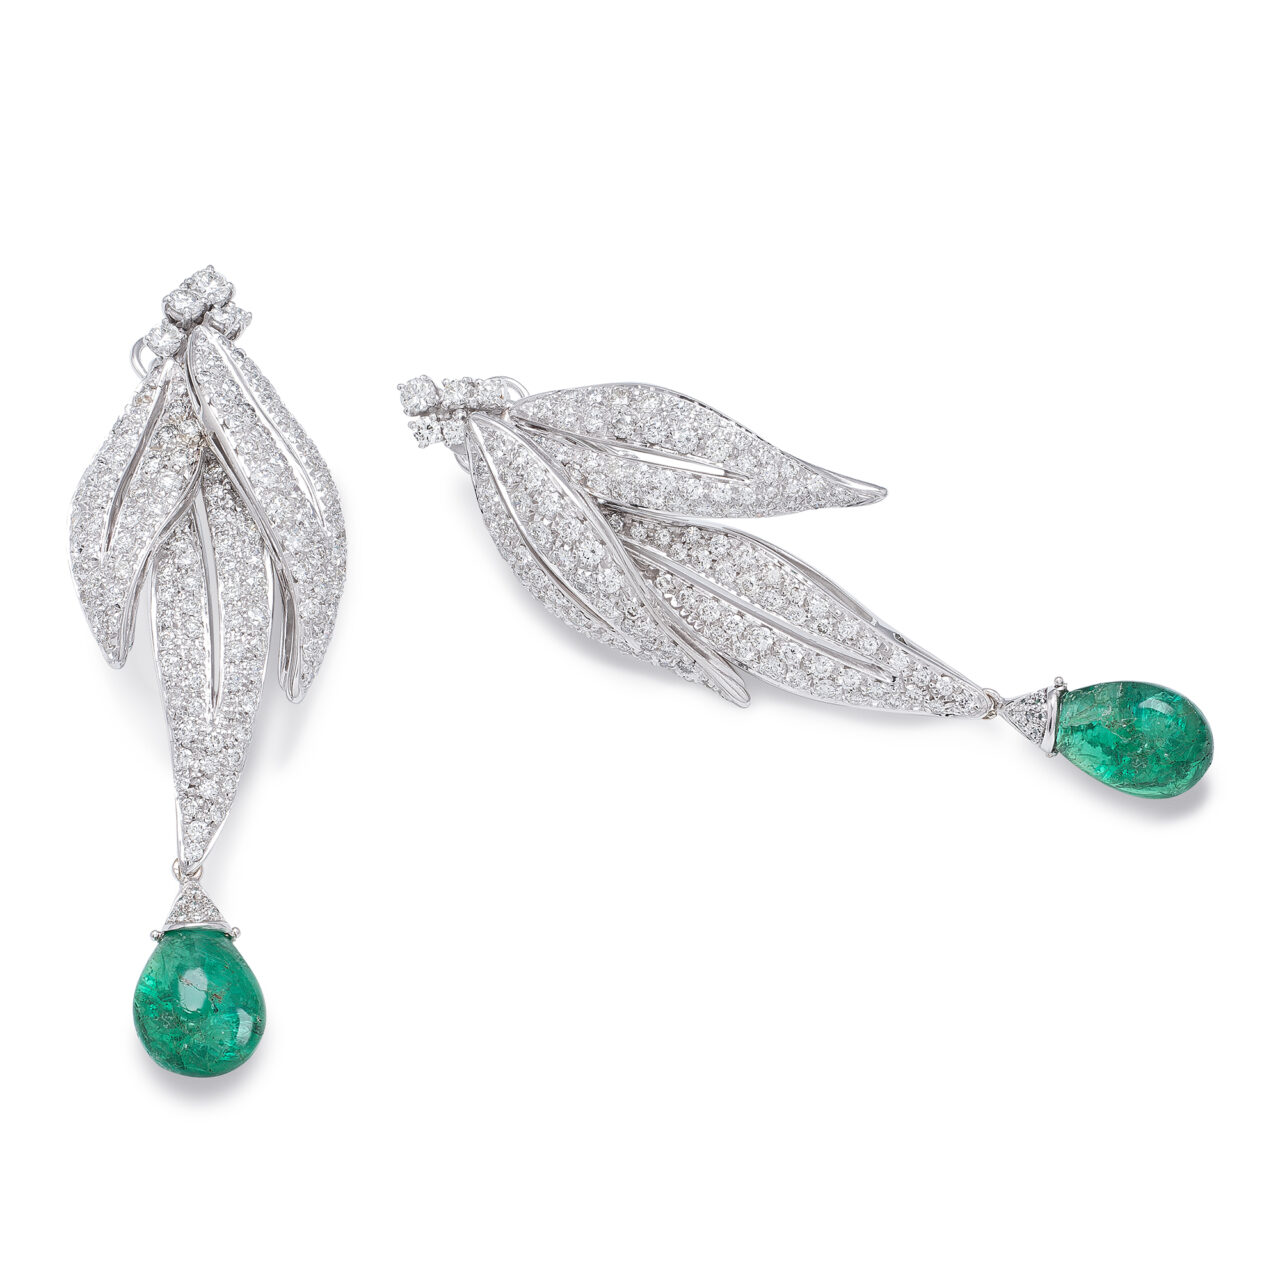 White gold earrings with diamonds and cabochon emeralds